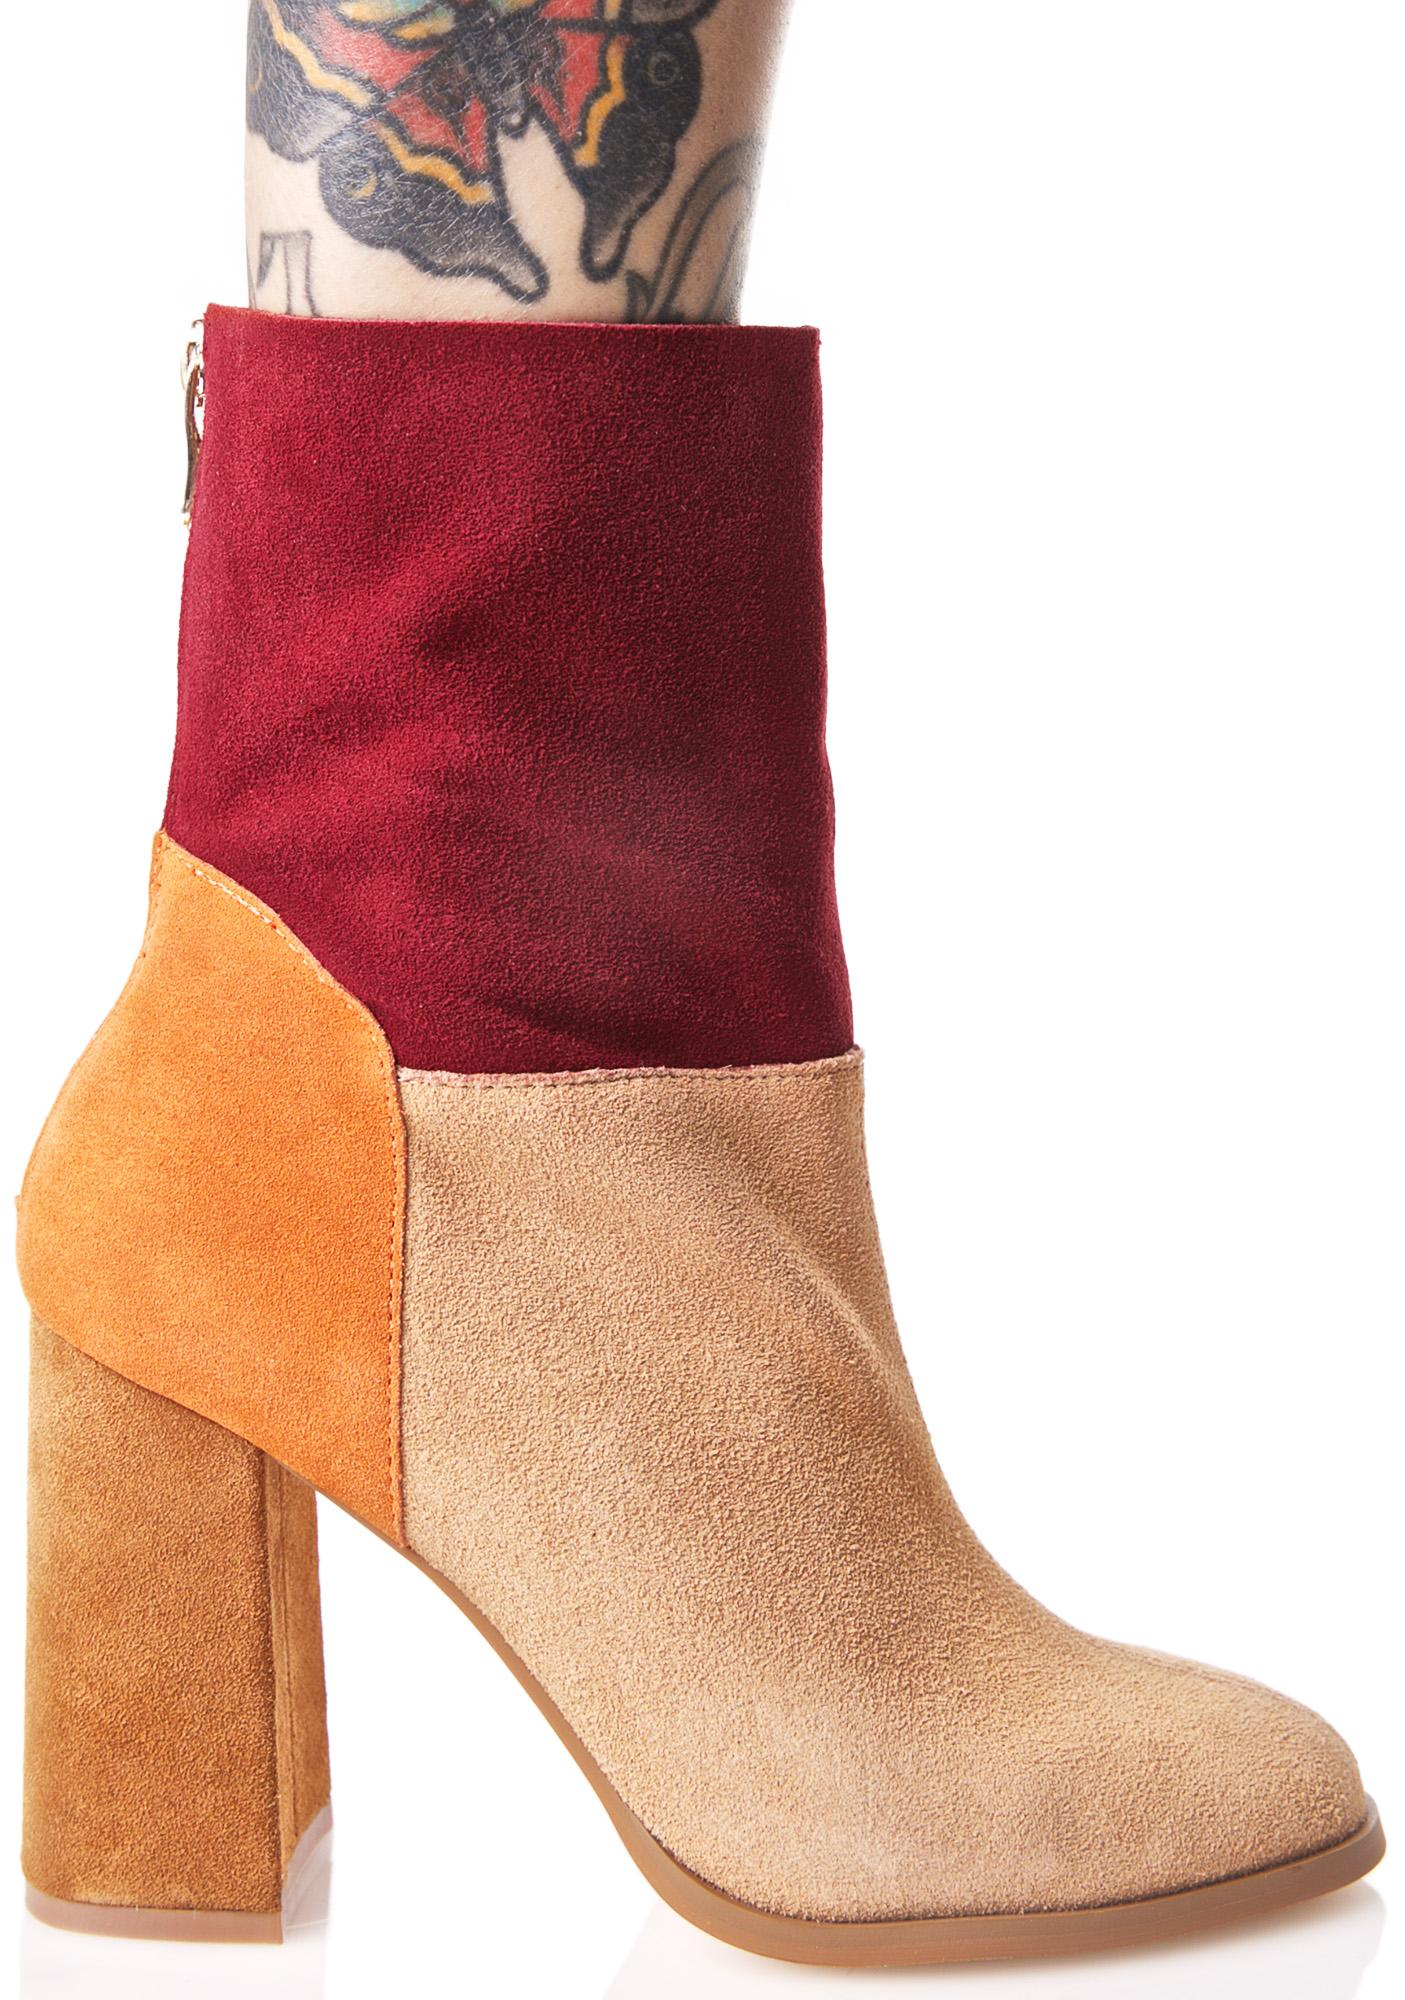 Chinese Laundry Rumba Suede Boots